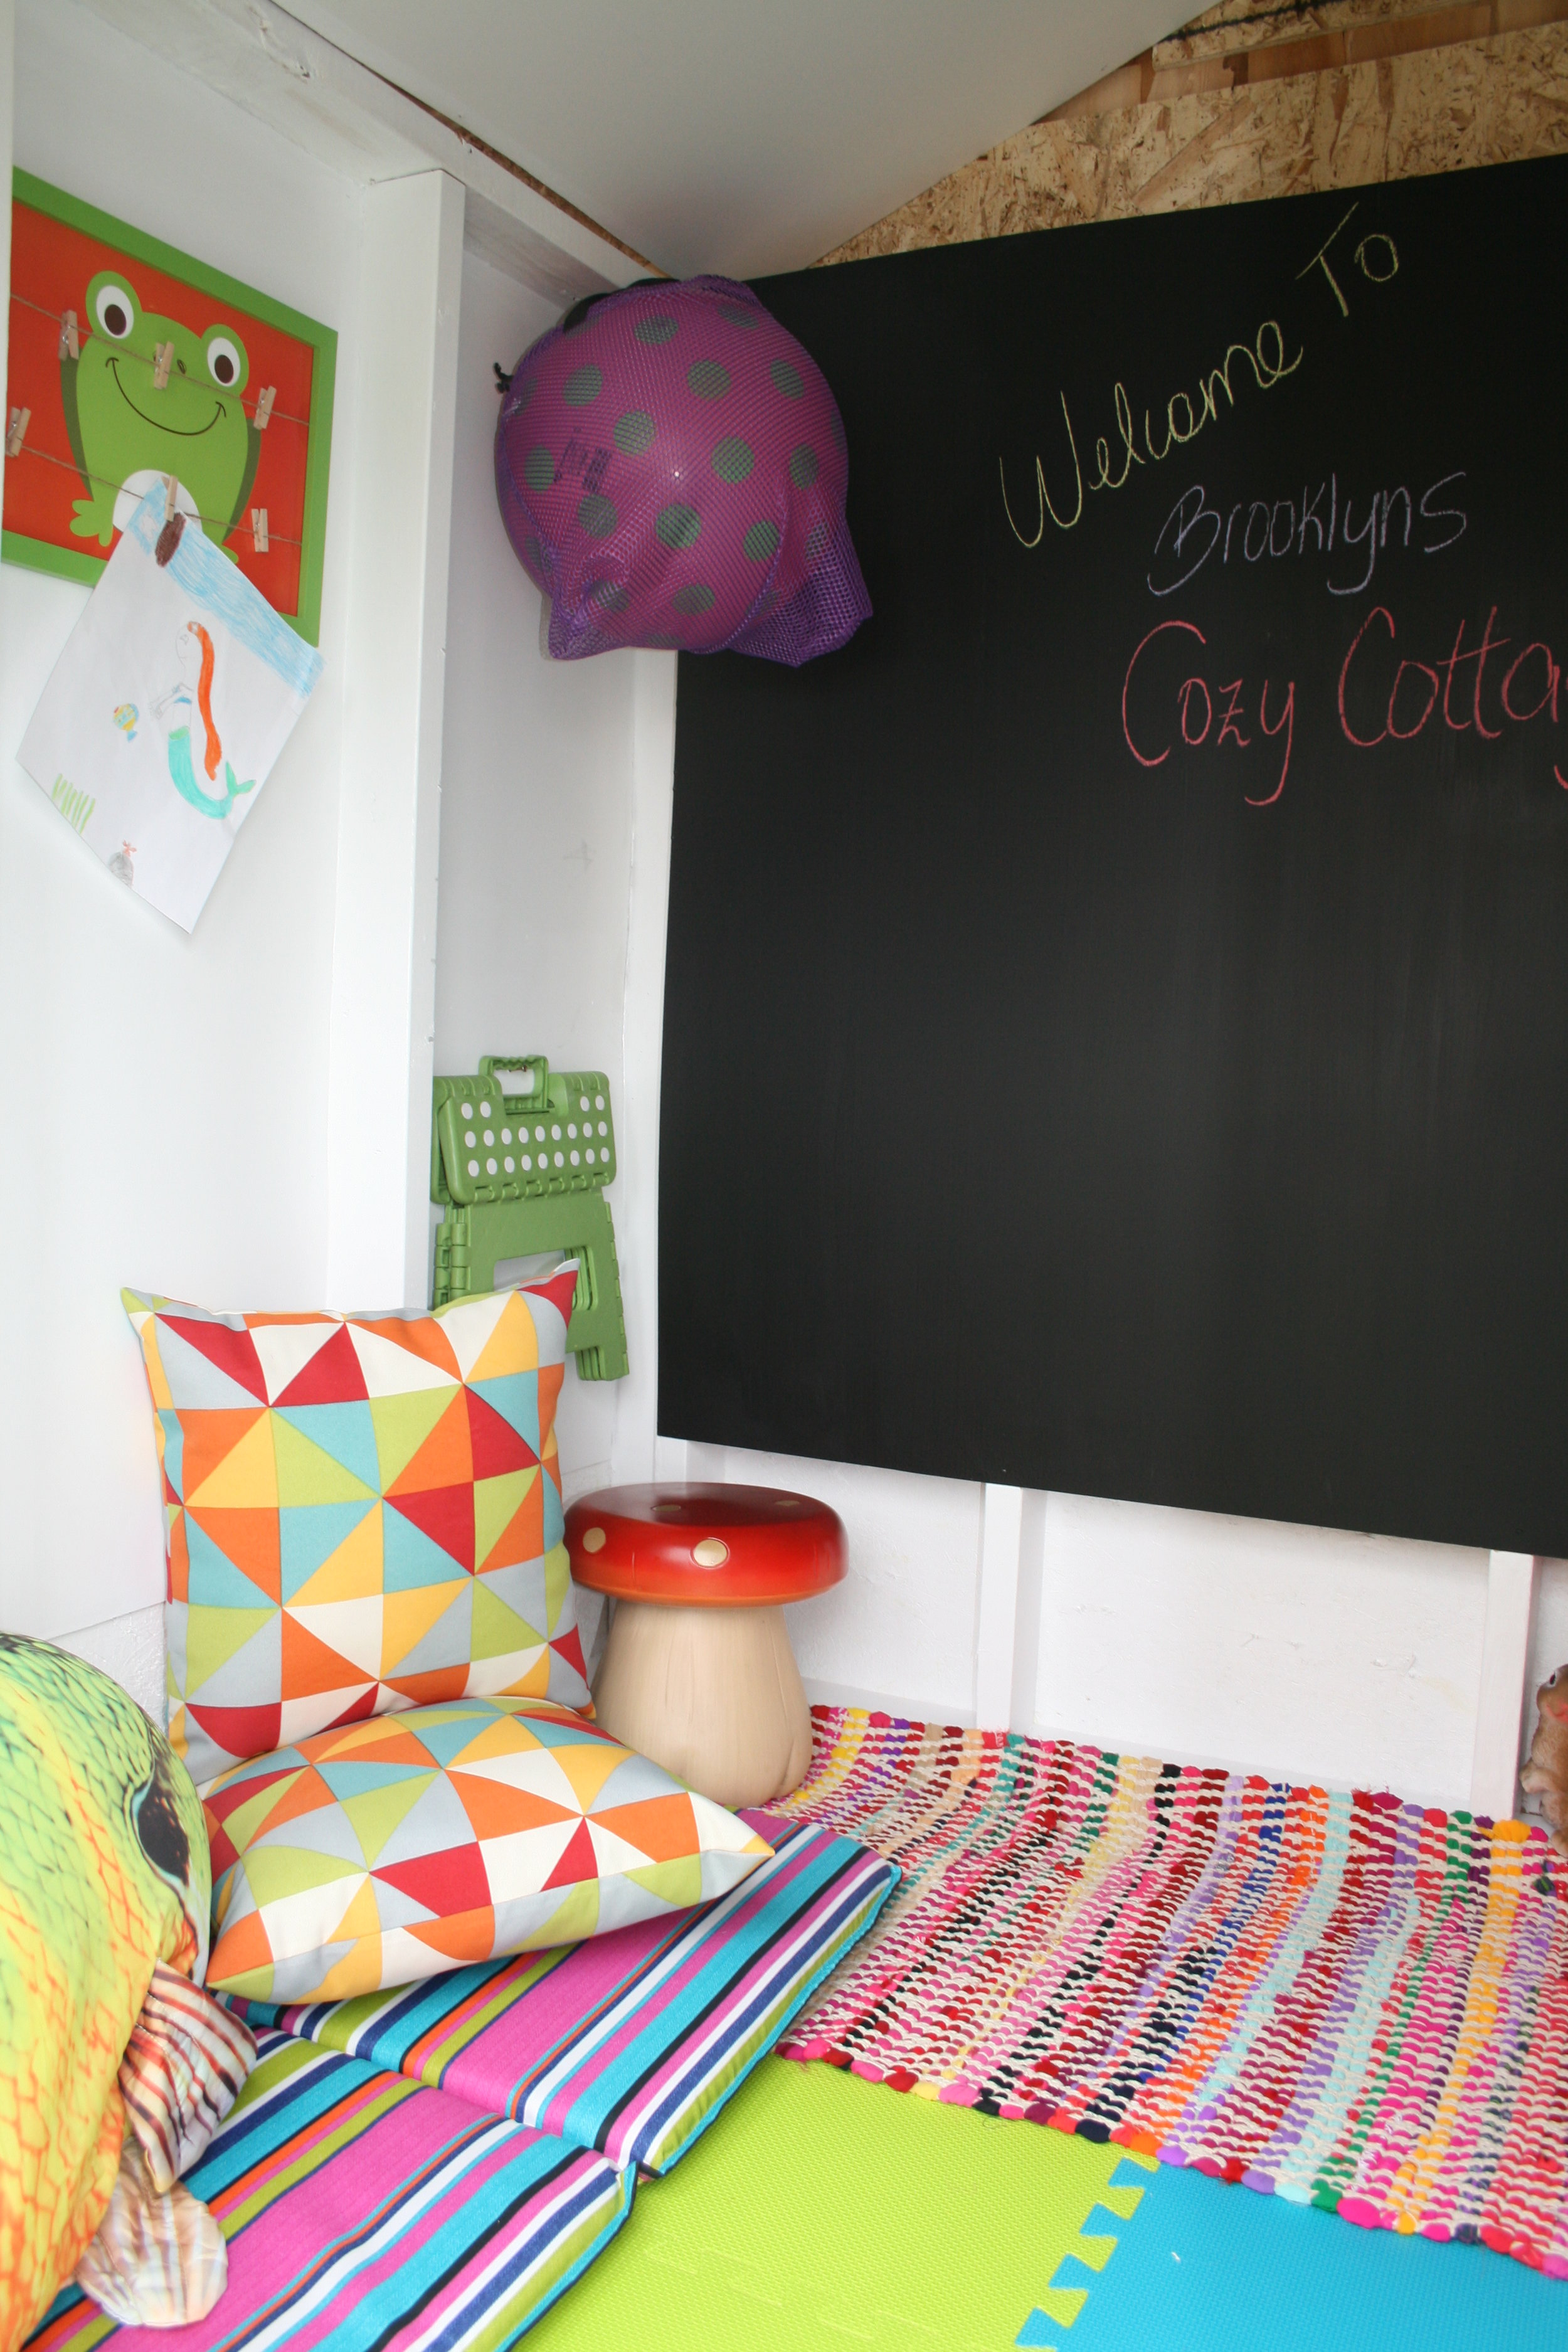 Comfy colourful outdoor pillows, mats & rug along with this  must have  mushroom stool create a cozy lounging area to chat and play. The wall area can be used to display art to.